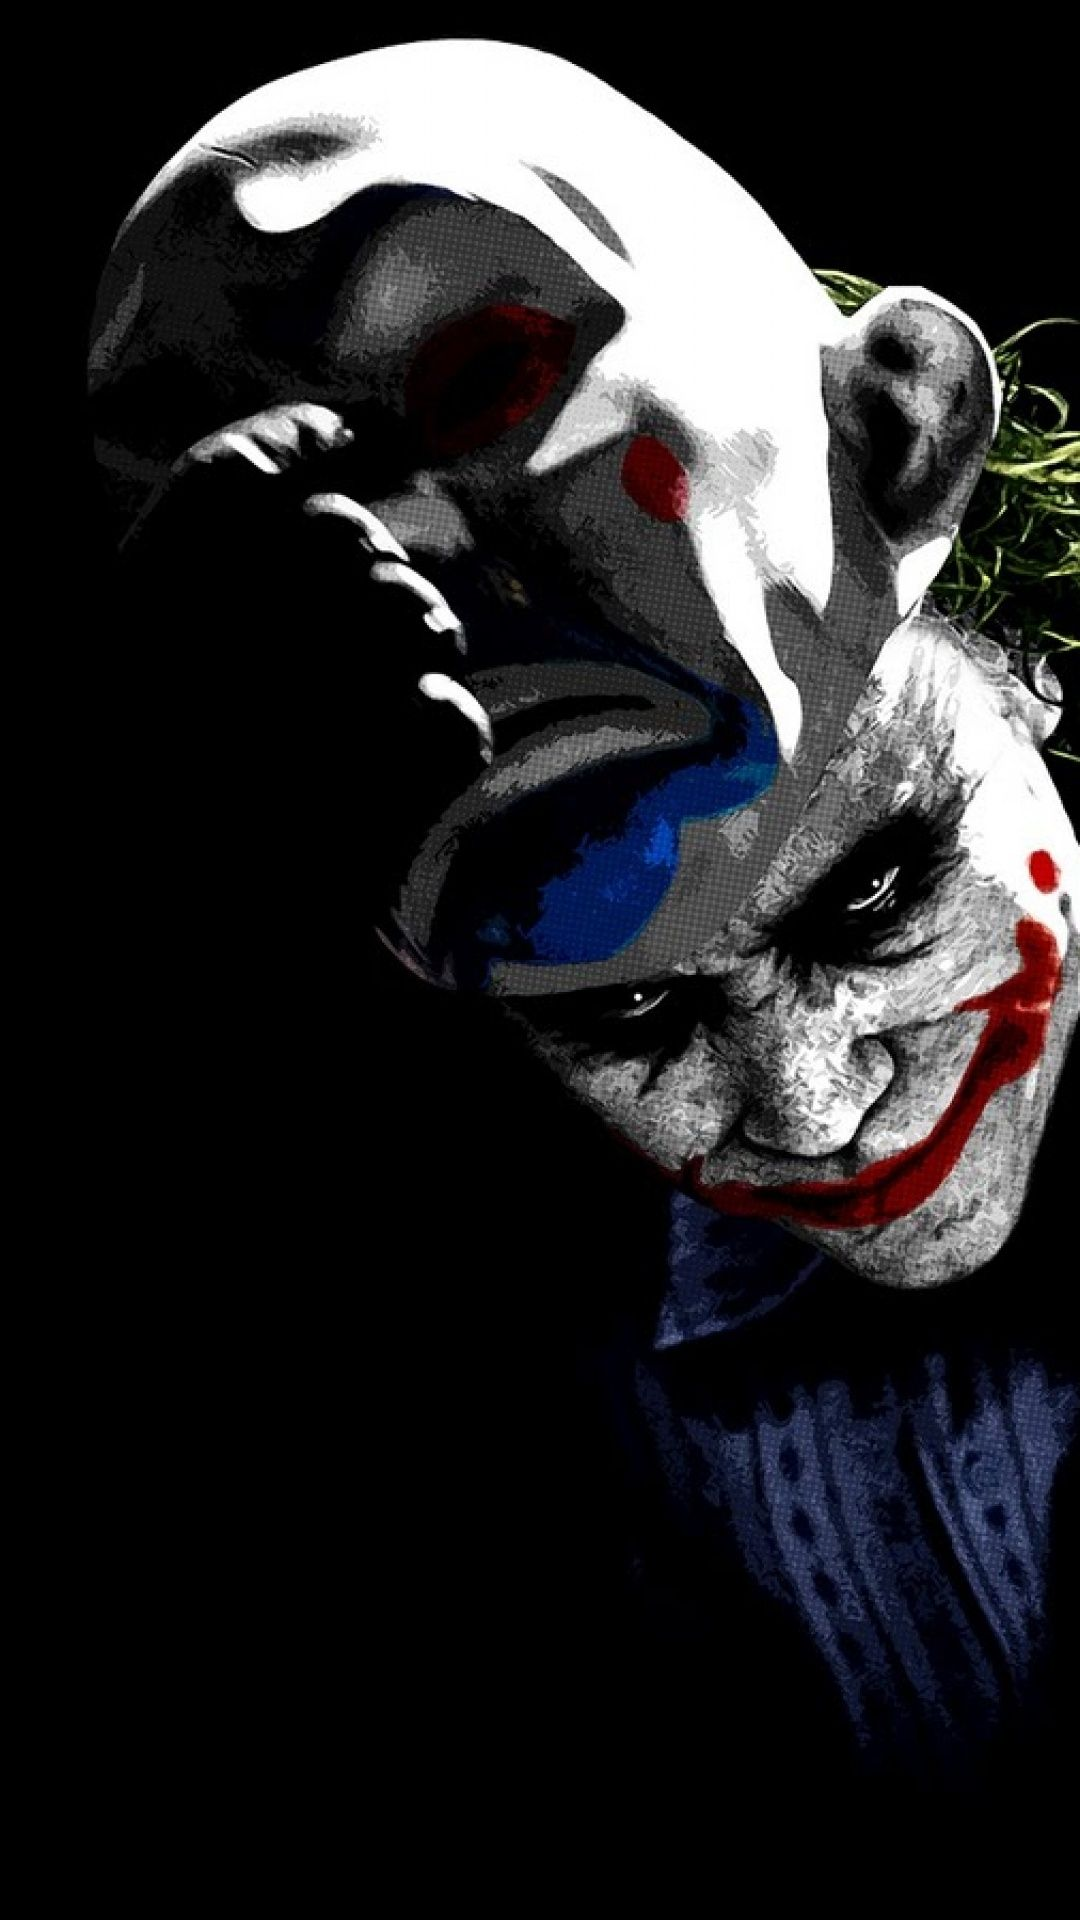 Batman Joker Iphone 5 Wallpaper Download Best Batman